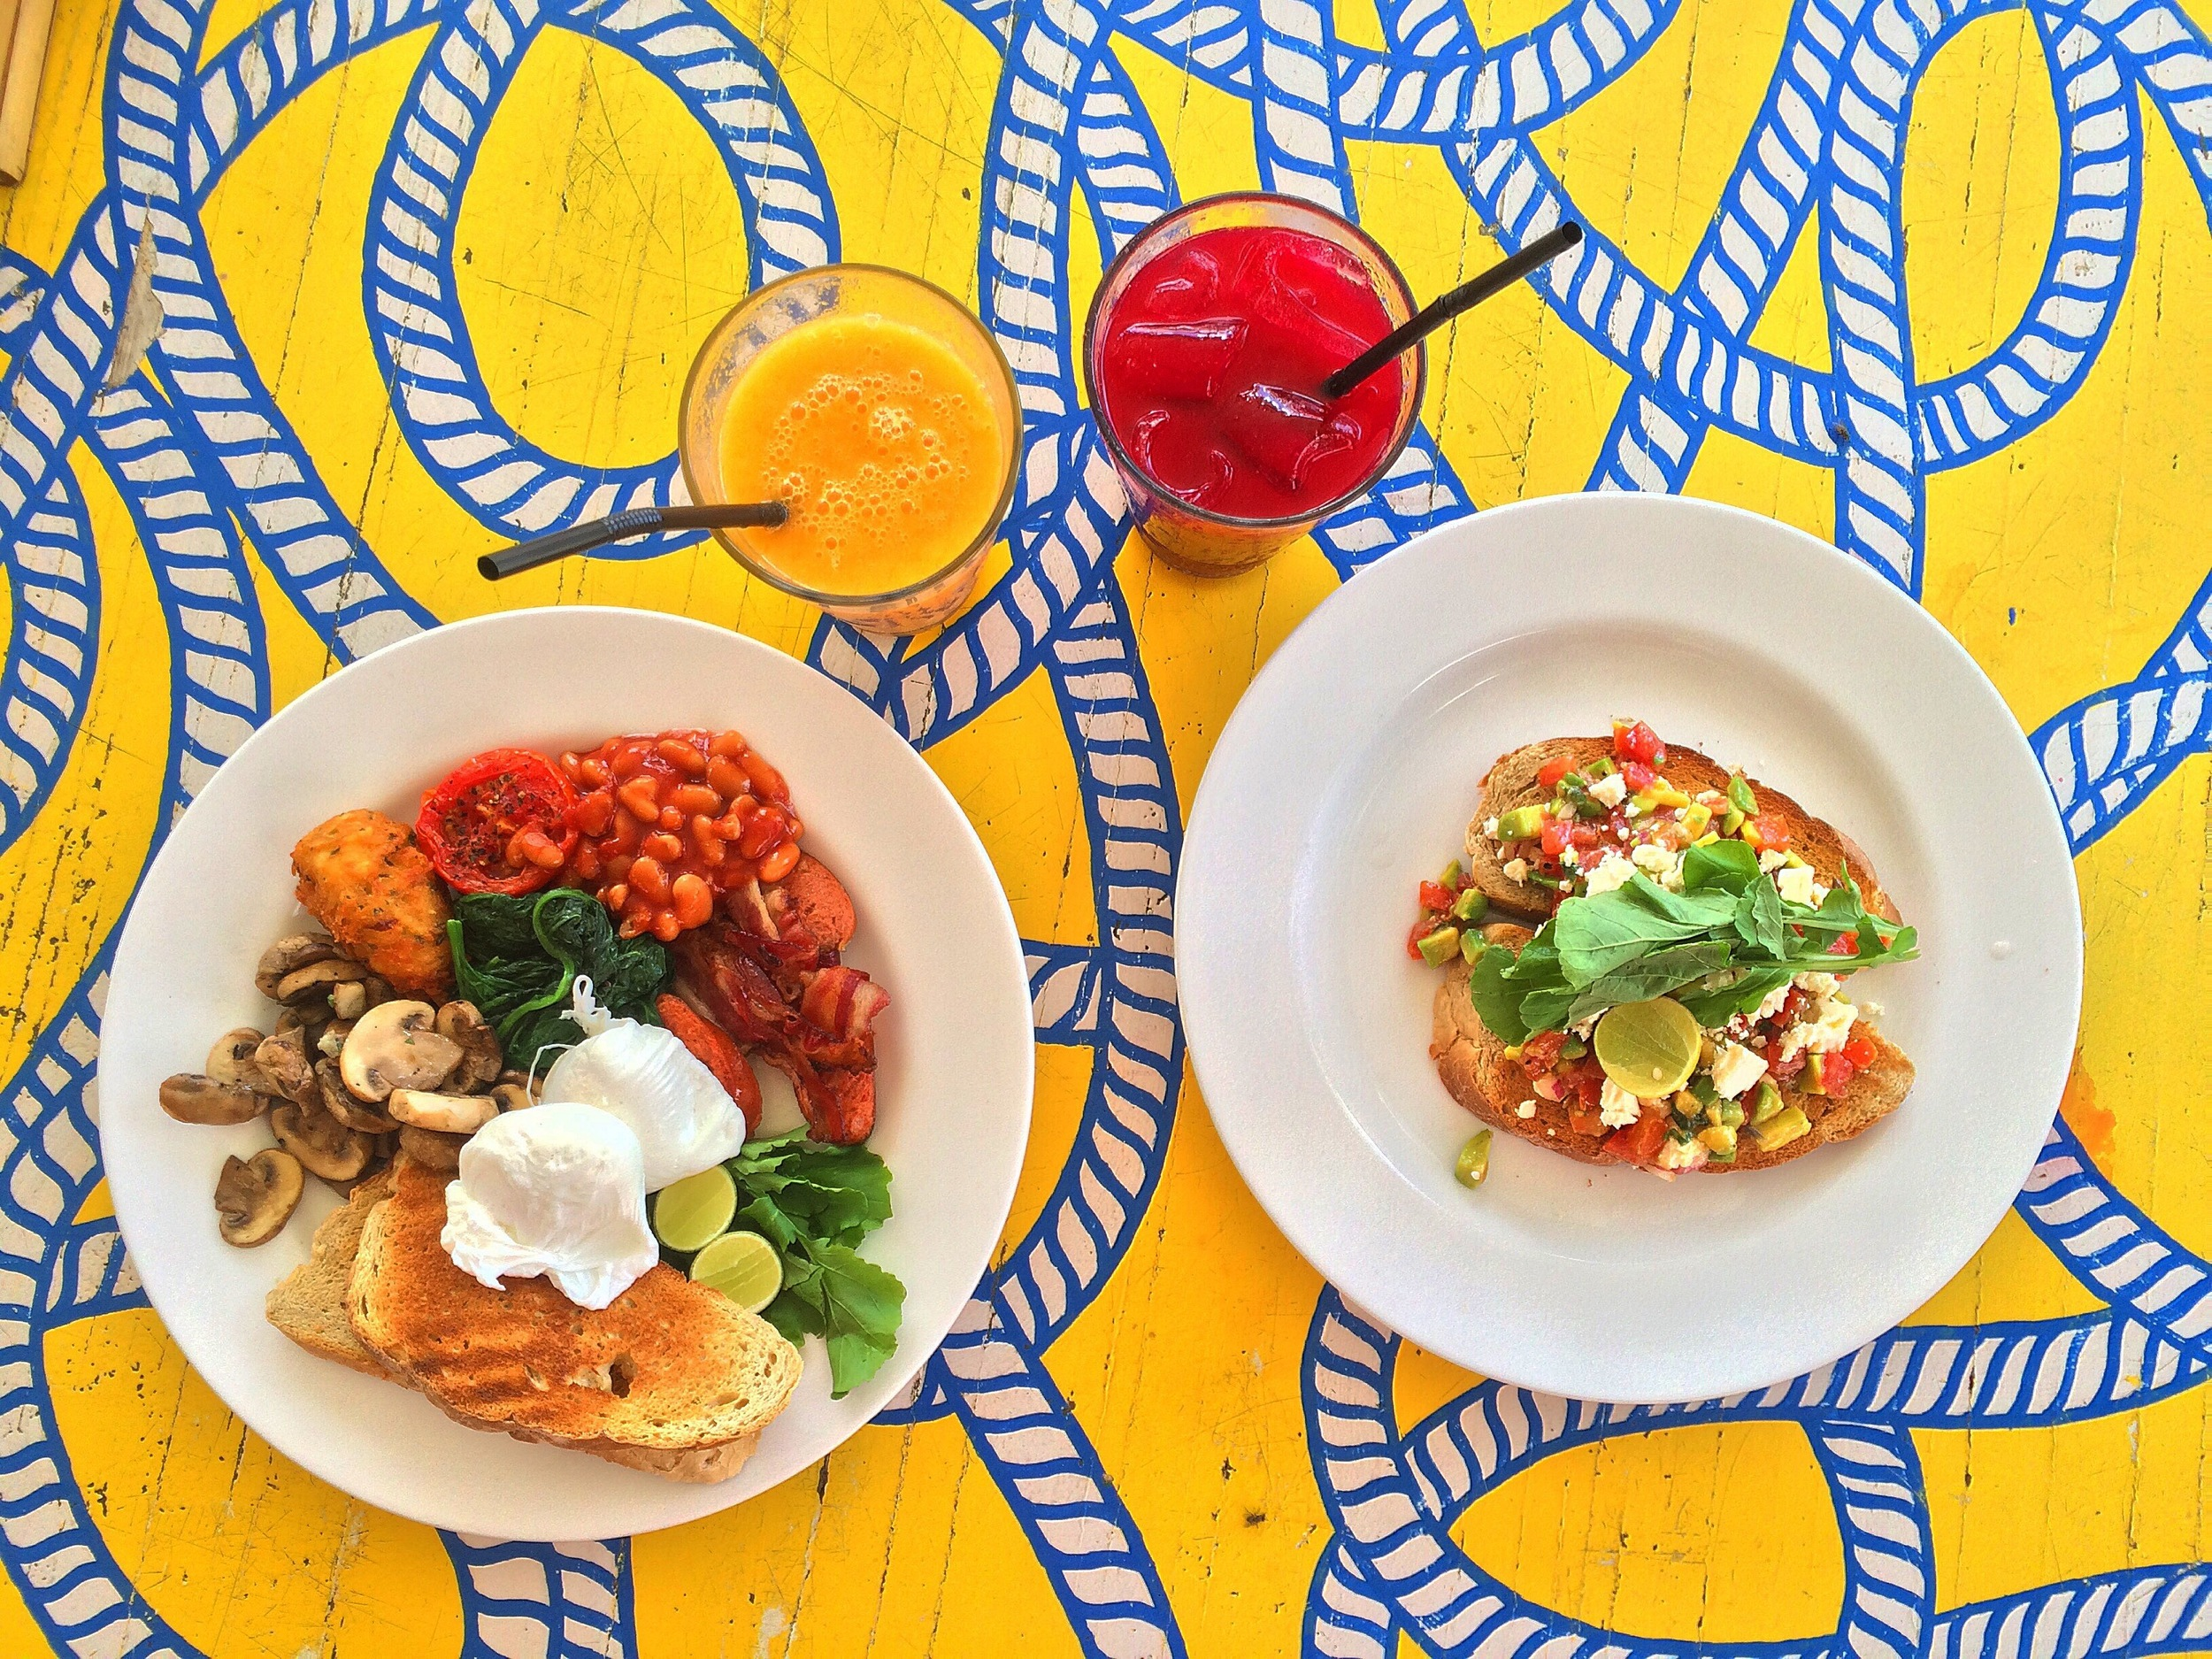 Two poached eggs, bacon, pork chorizo, spinach, mushrooms, roasted tomatoes, beans, hashbrown and a toasted sourdough slice and an open-faced avocado tomato salsa & feta on toasted sourdough sandwich.Plus, two refreshing juices to wash it all down!